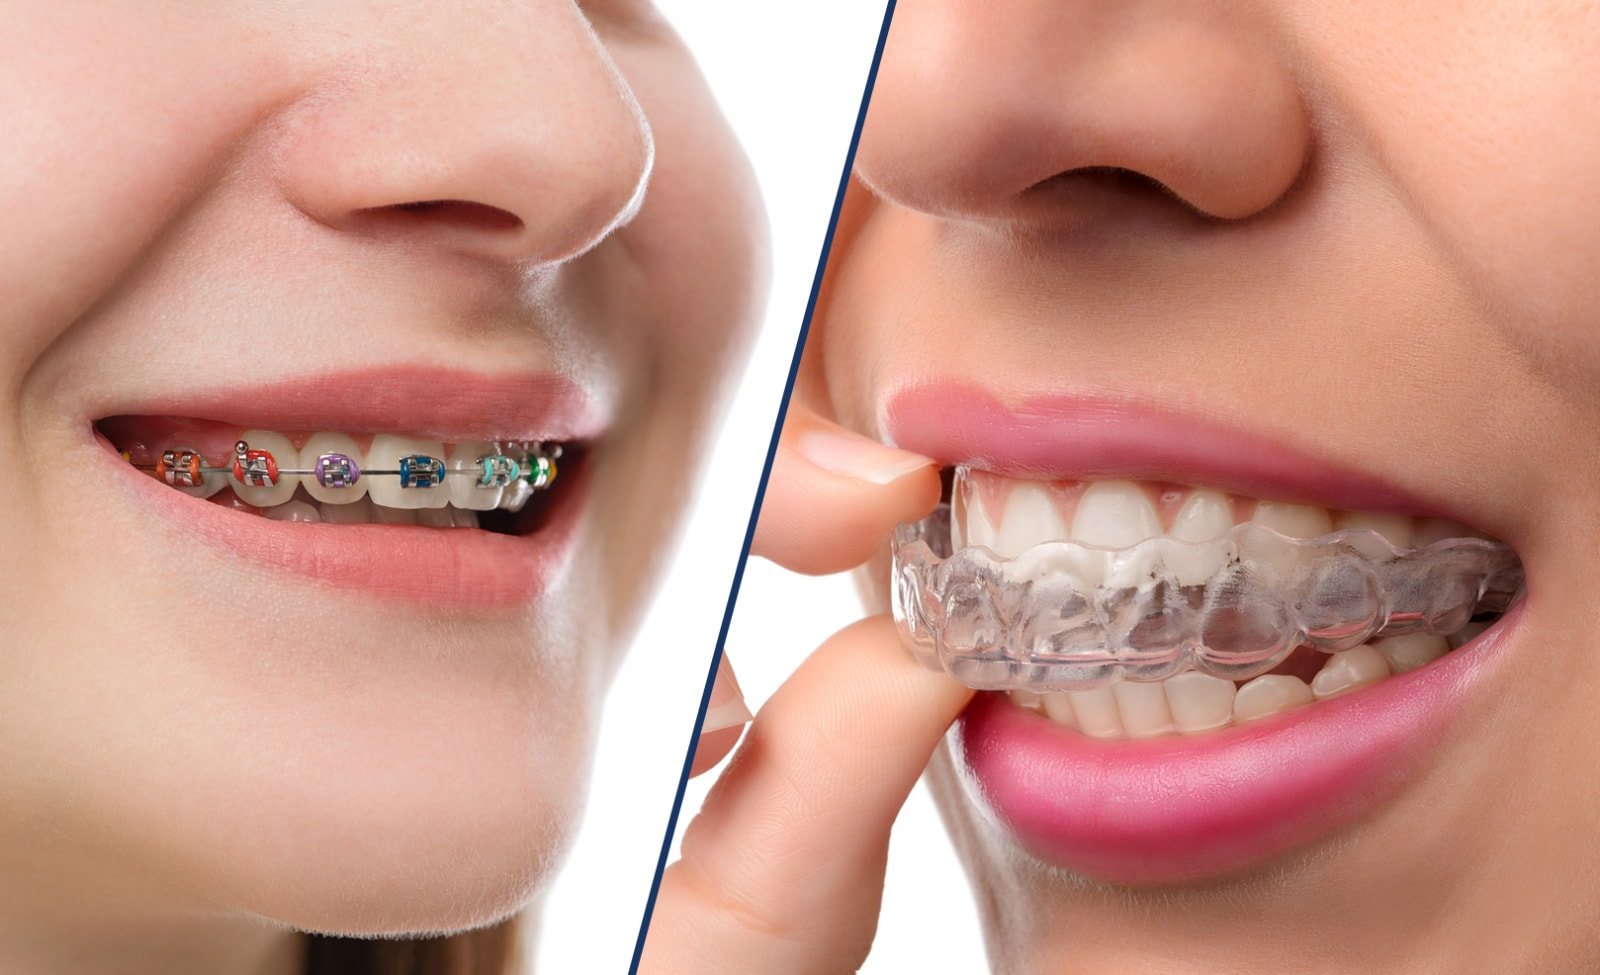 Açıklama: https://leberortho.com/media/1103/braces-vs-invisalign-hero.jpg